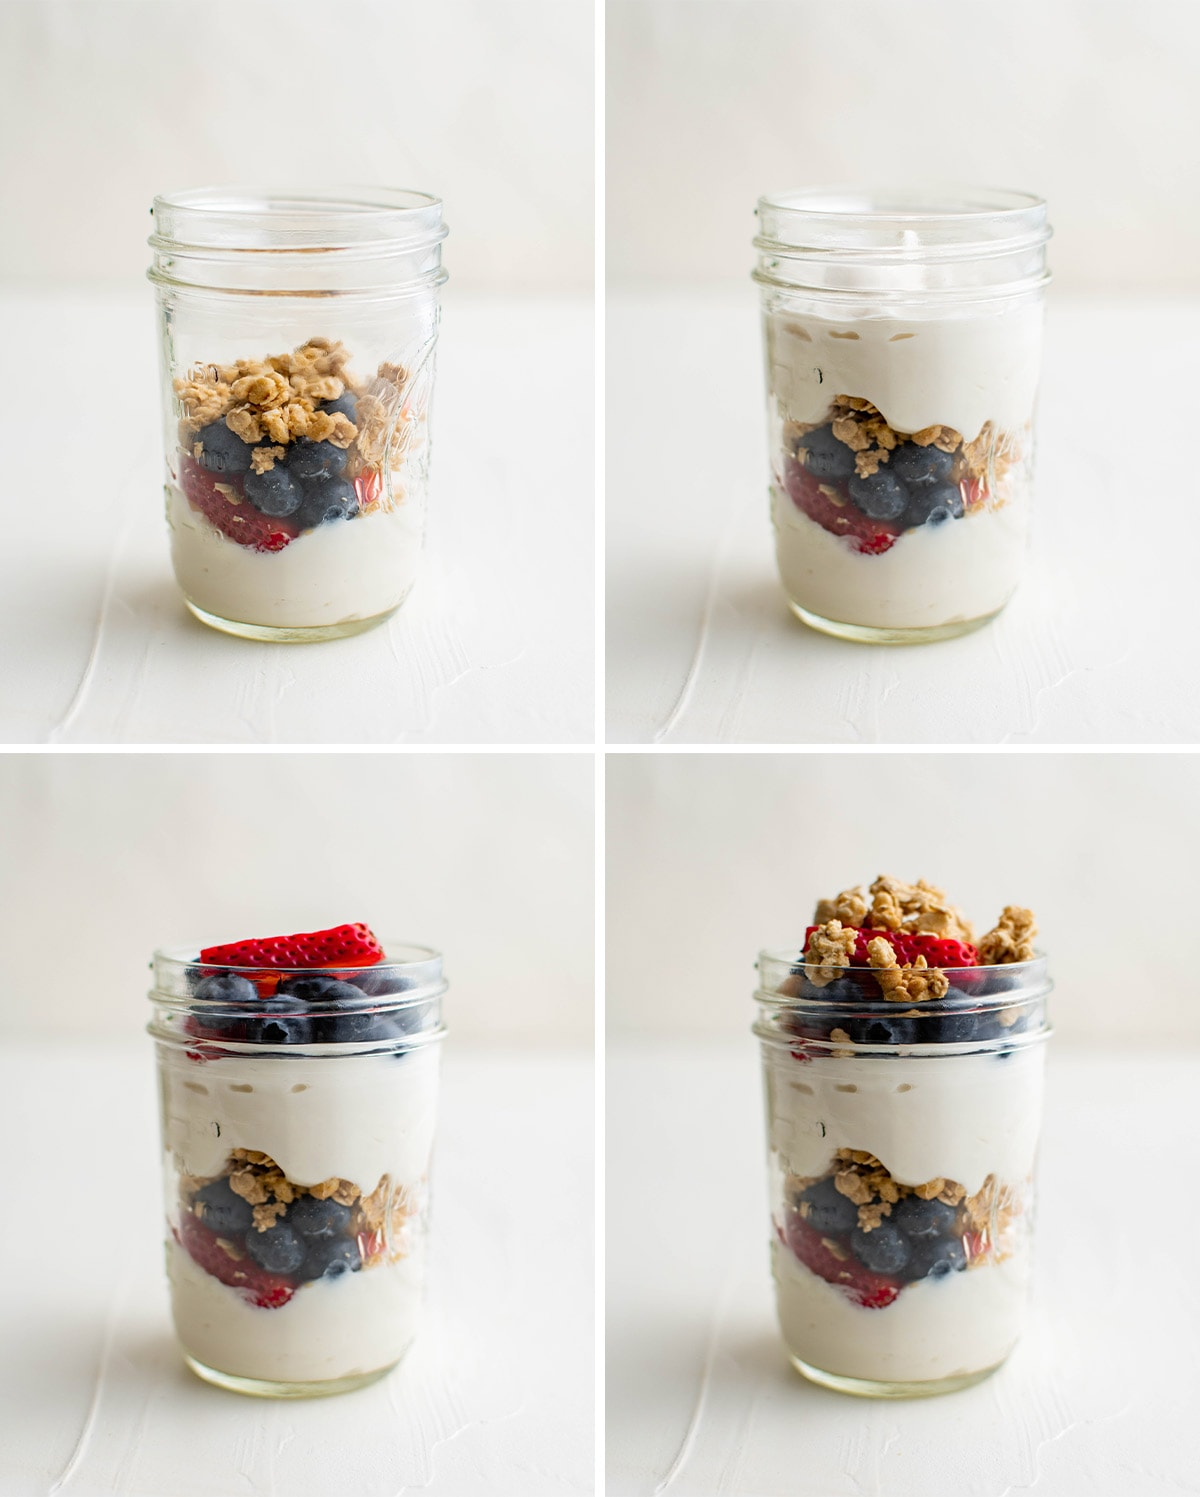 collage of images showing how to make a berry yogurt parfait